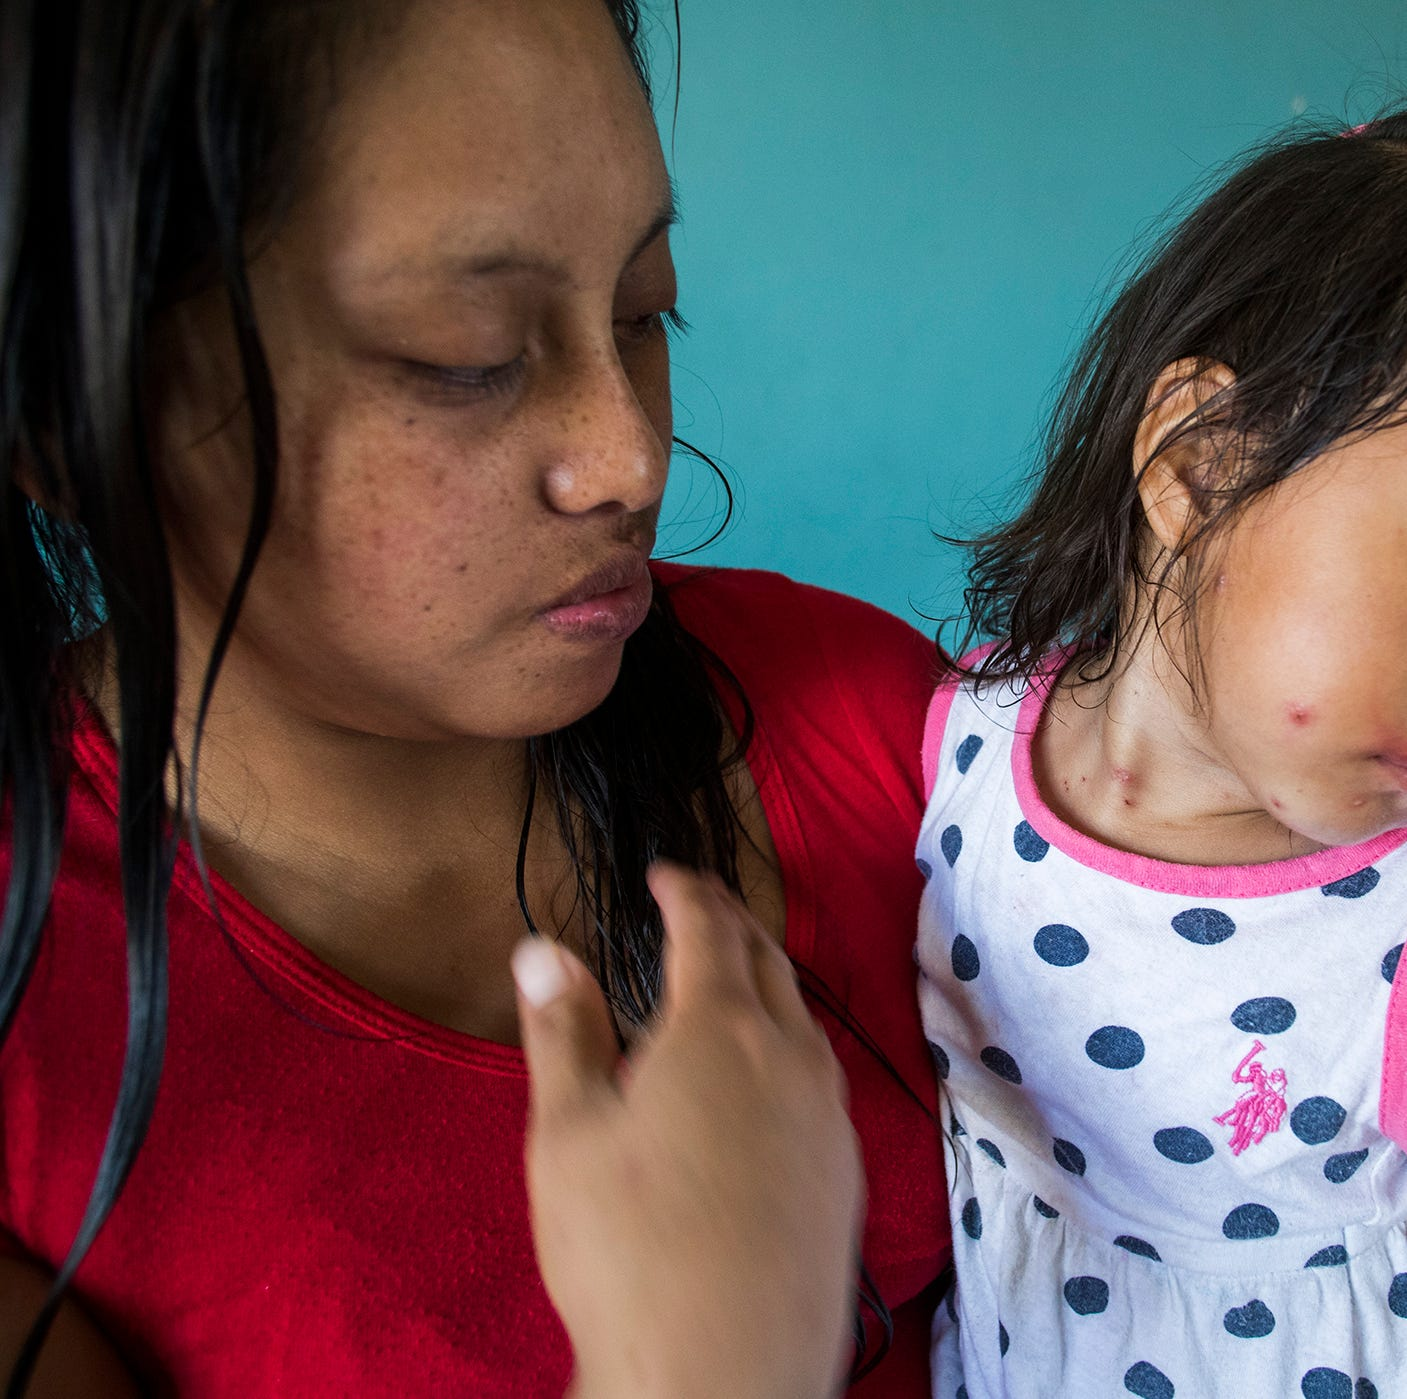 Asylum seekers awaiting court dates in Mexicali face another challenge: Chickenpox